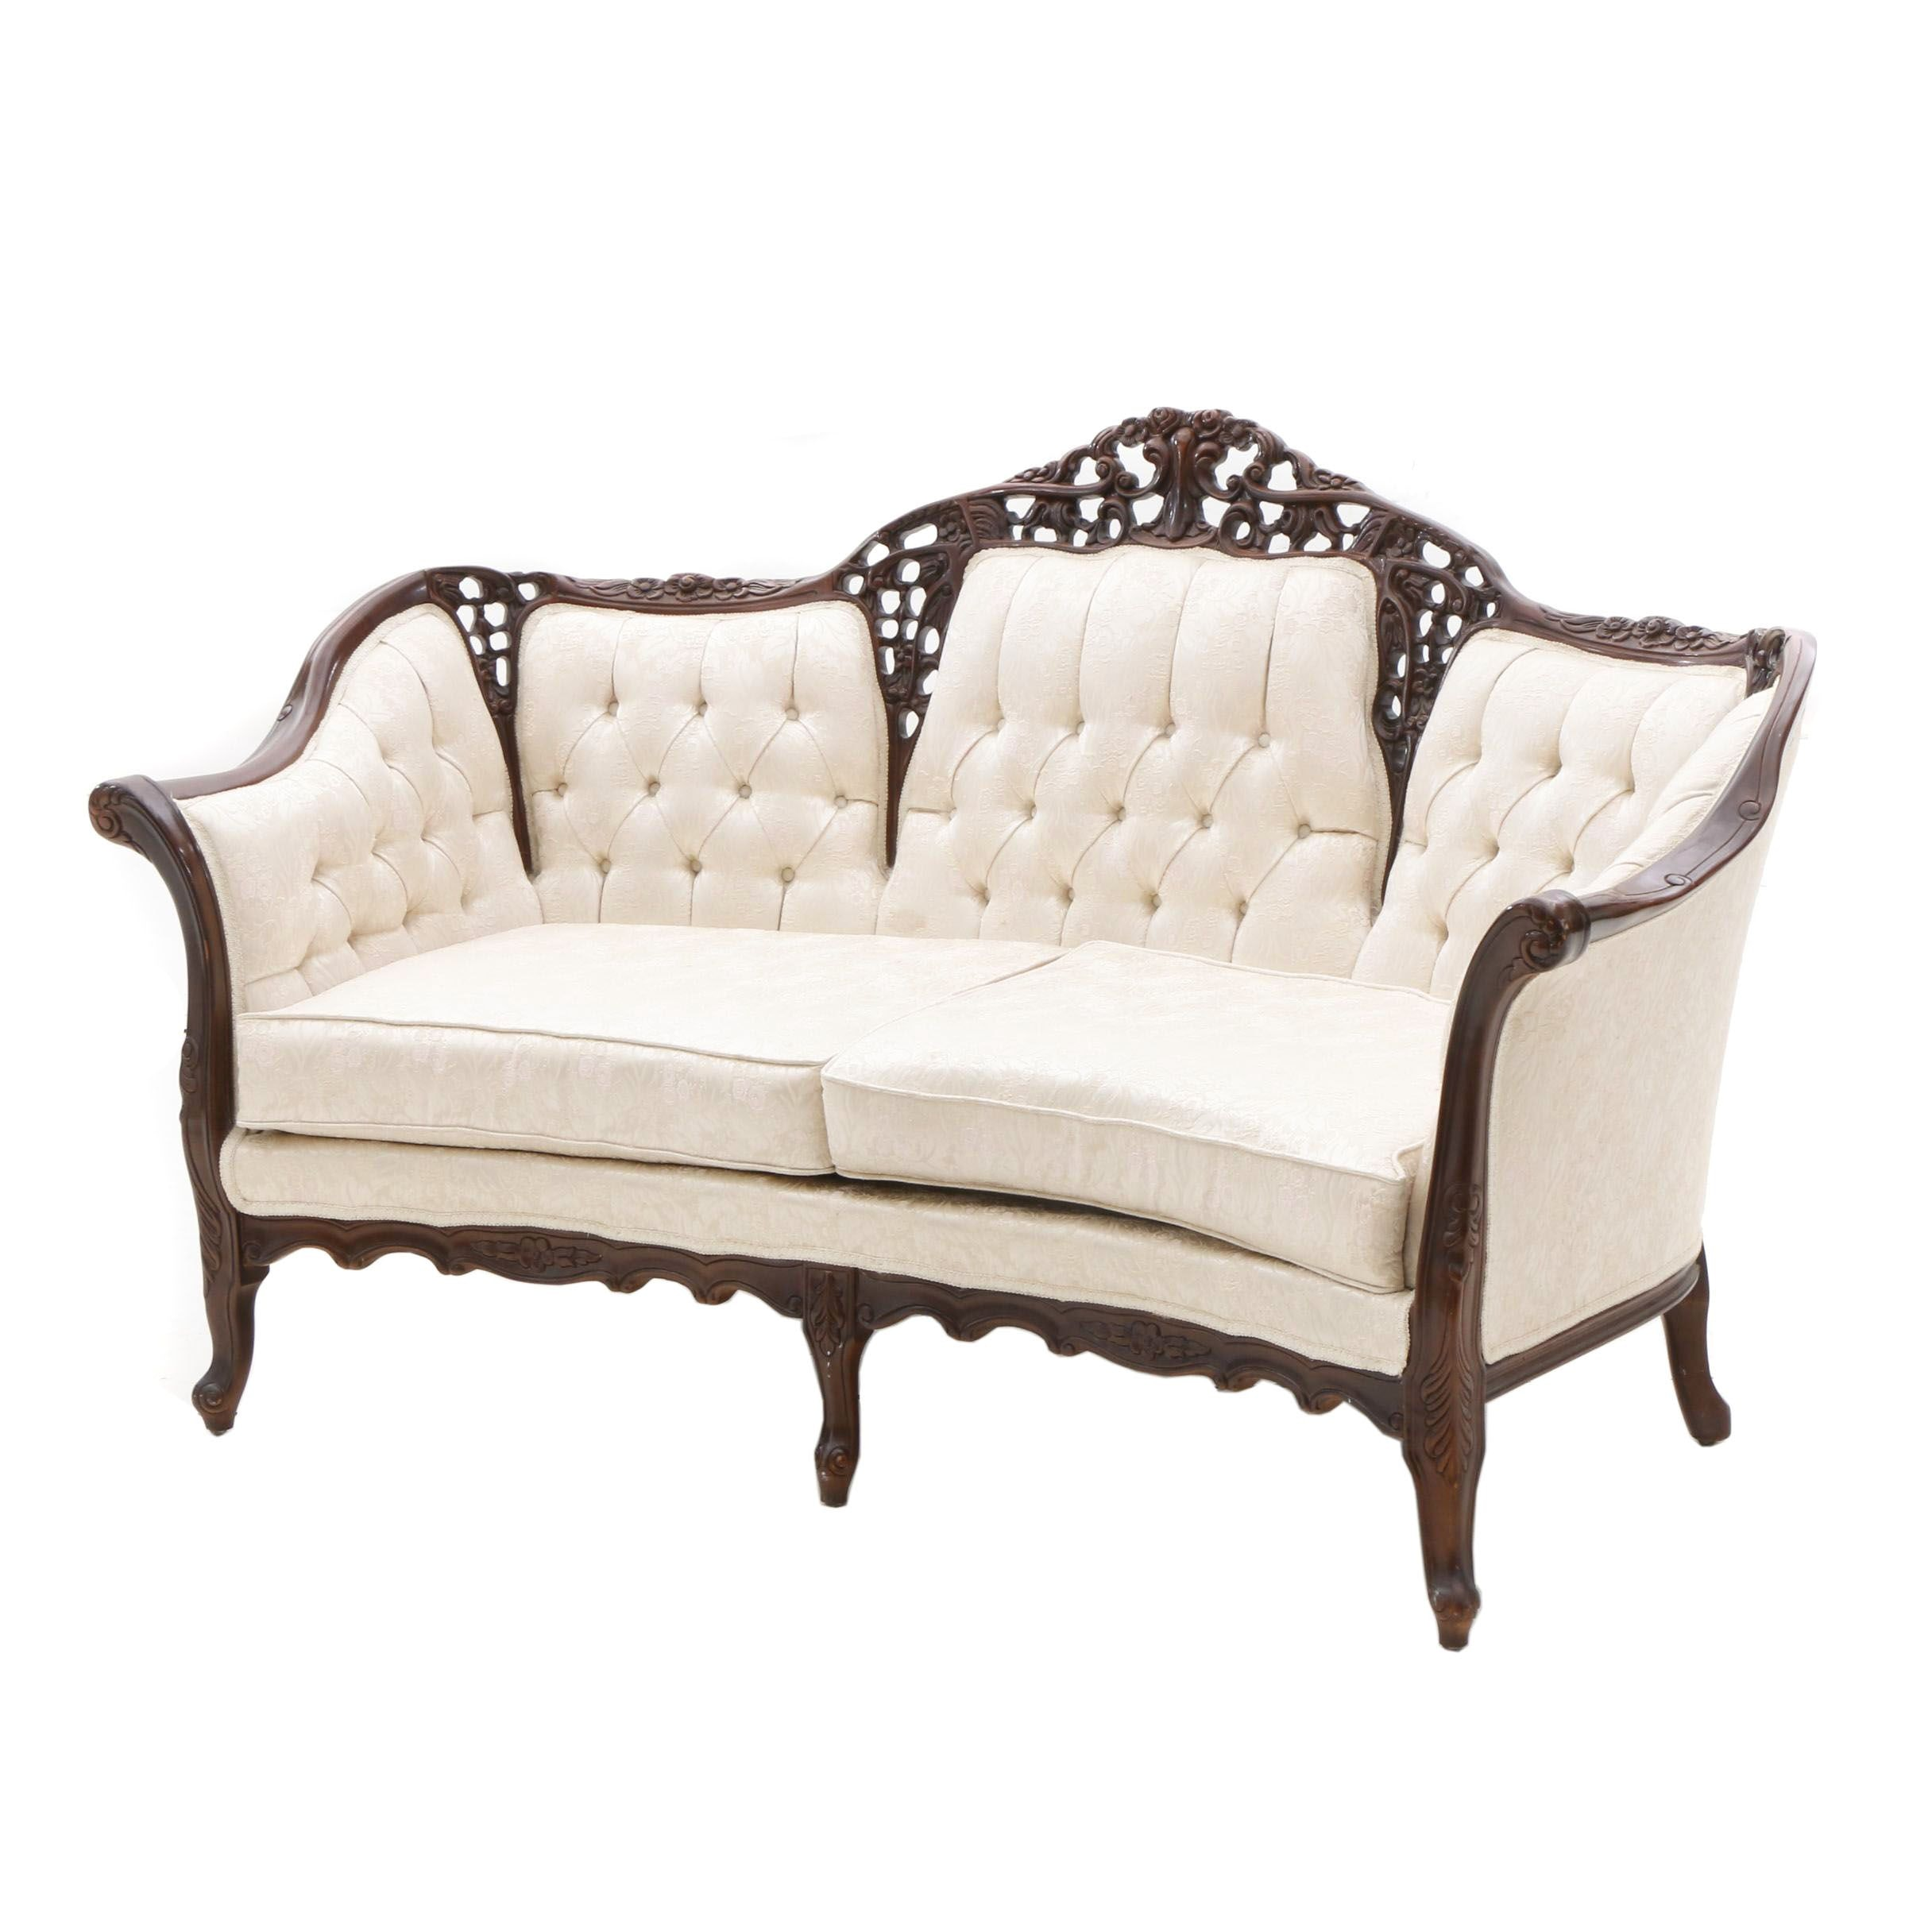 Carved Pecan Sofa by Kimball